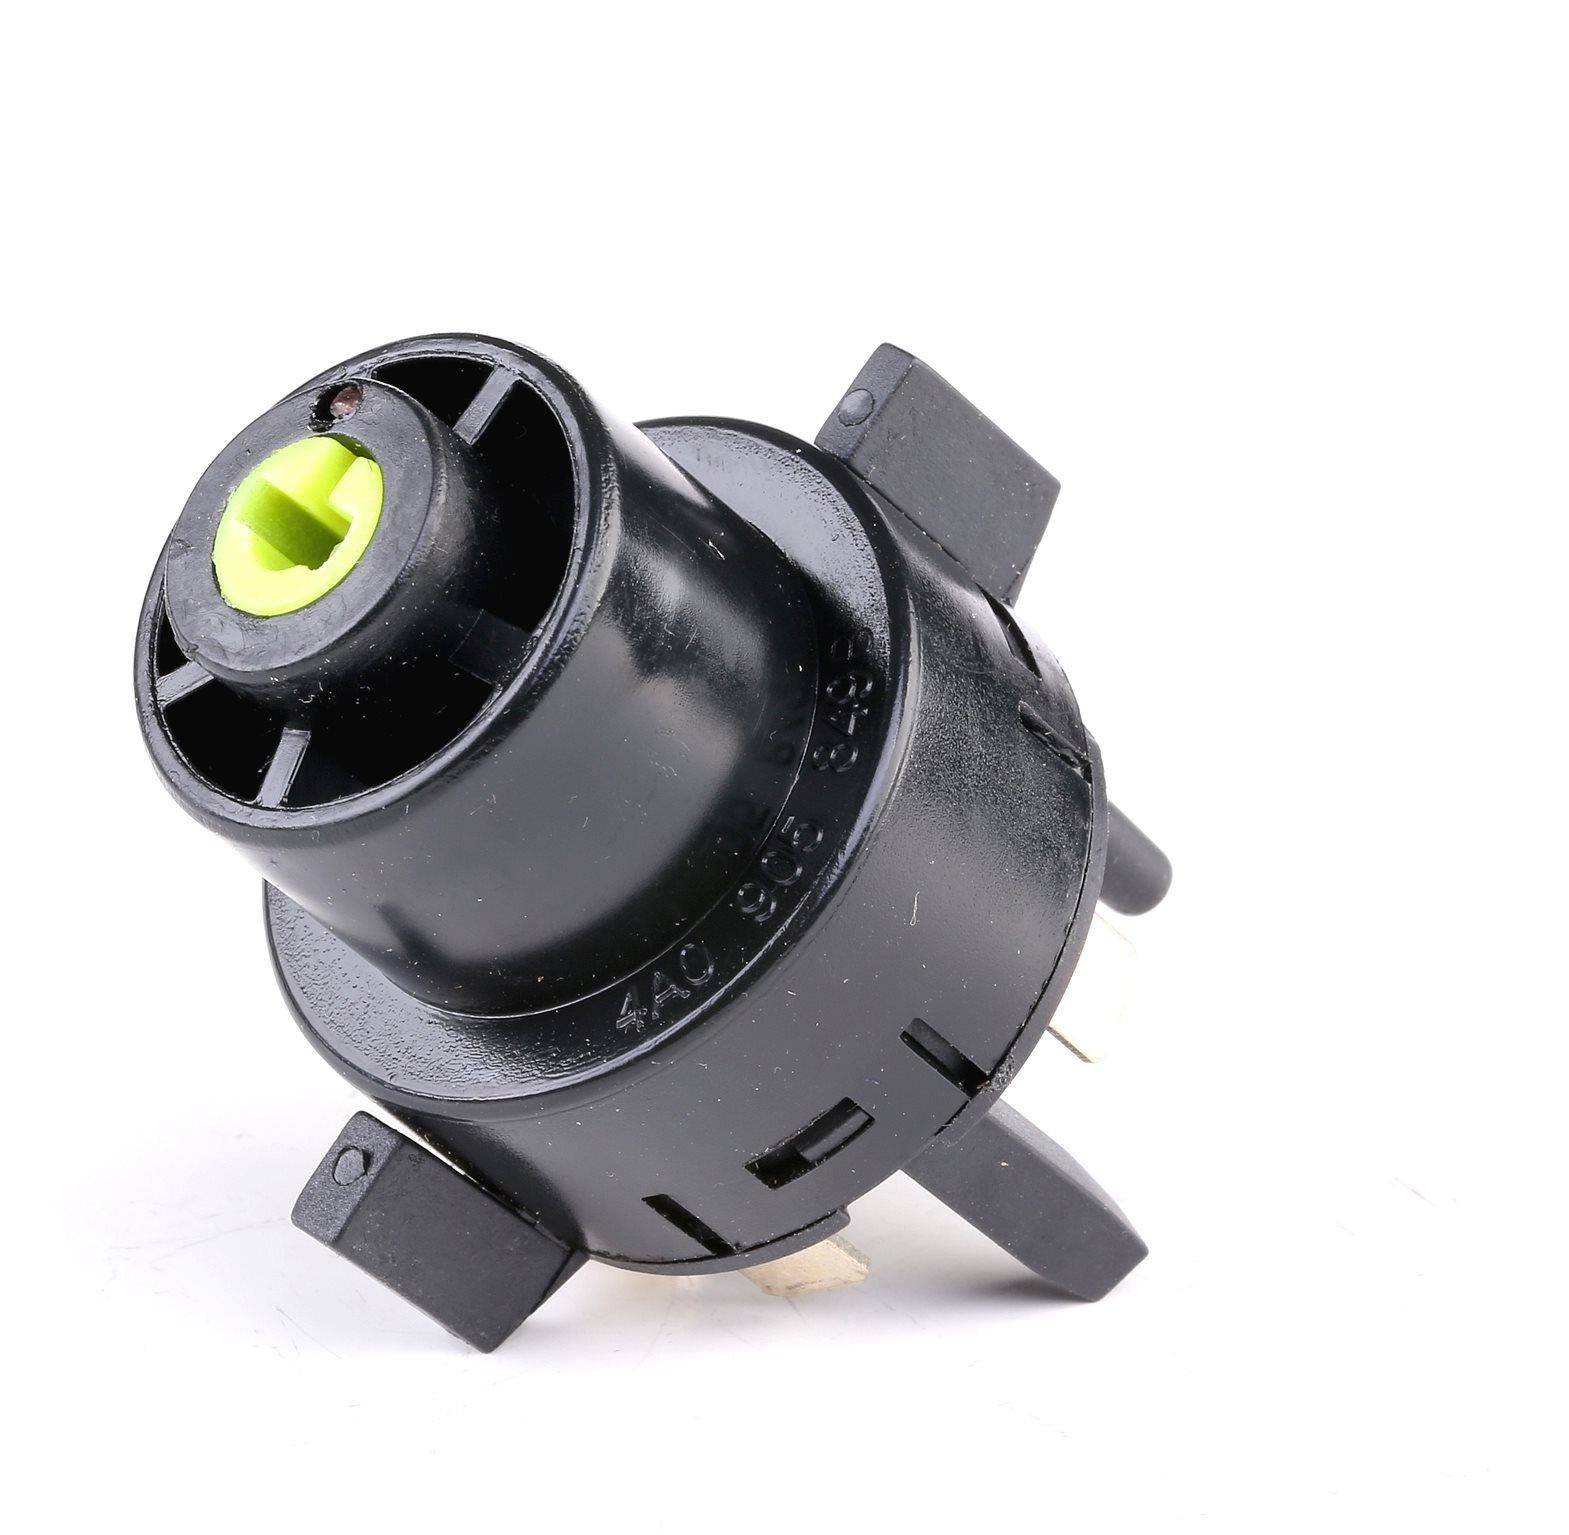 Ignition- / Starter Switch JP GROUP 1190400600 rating